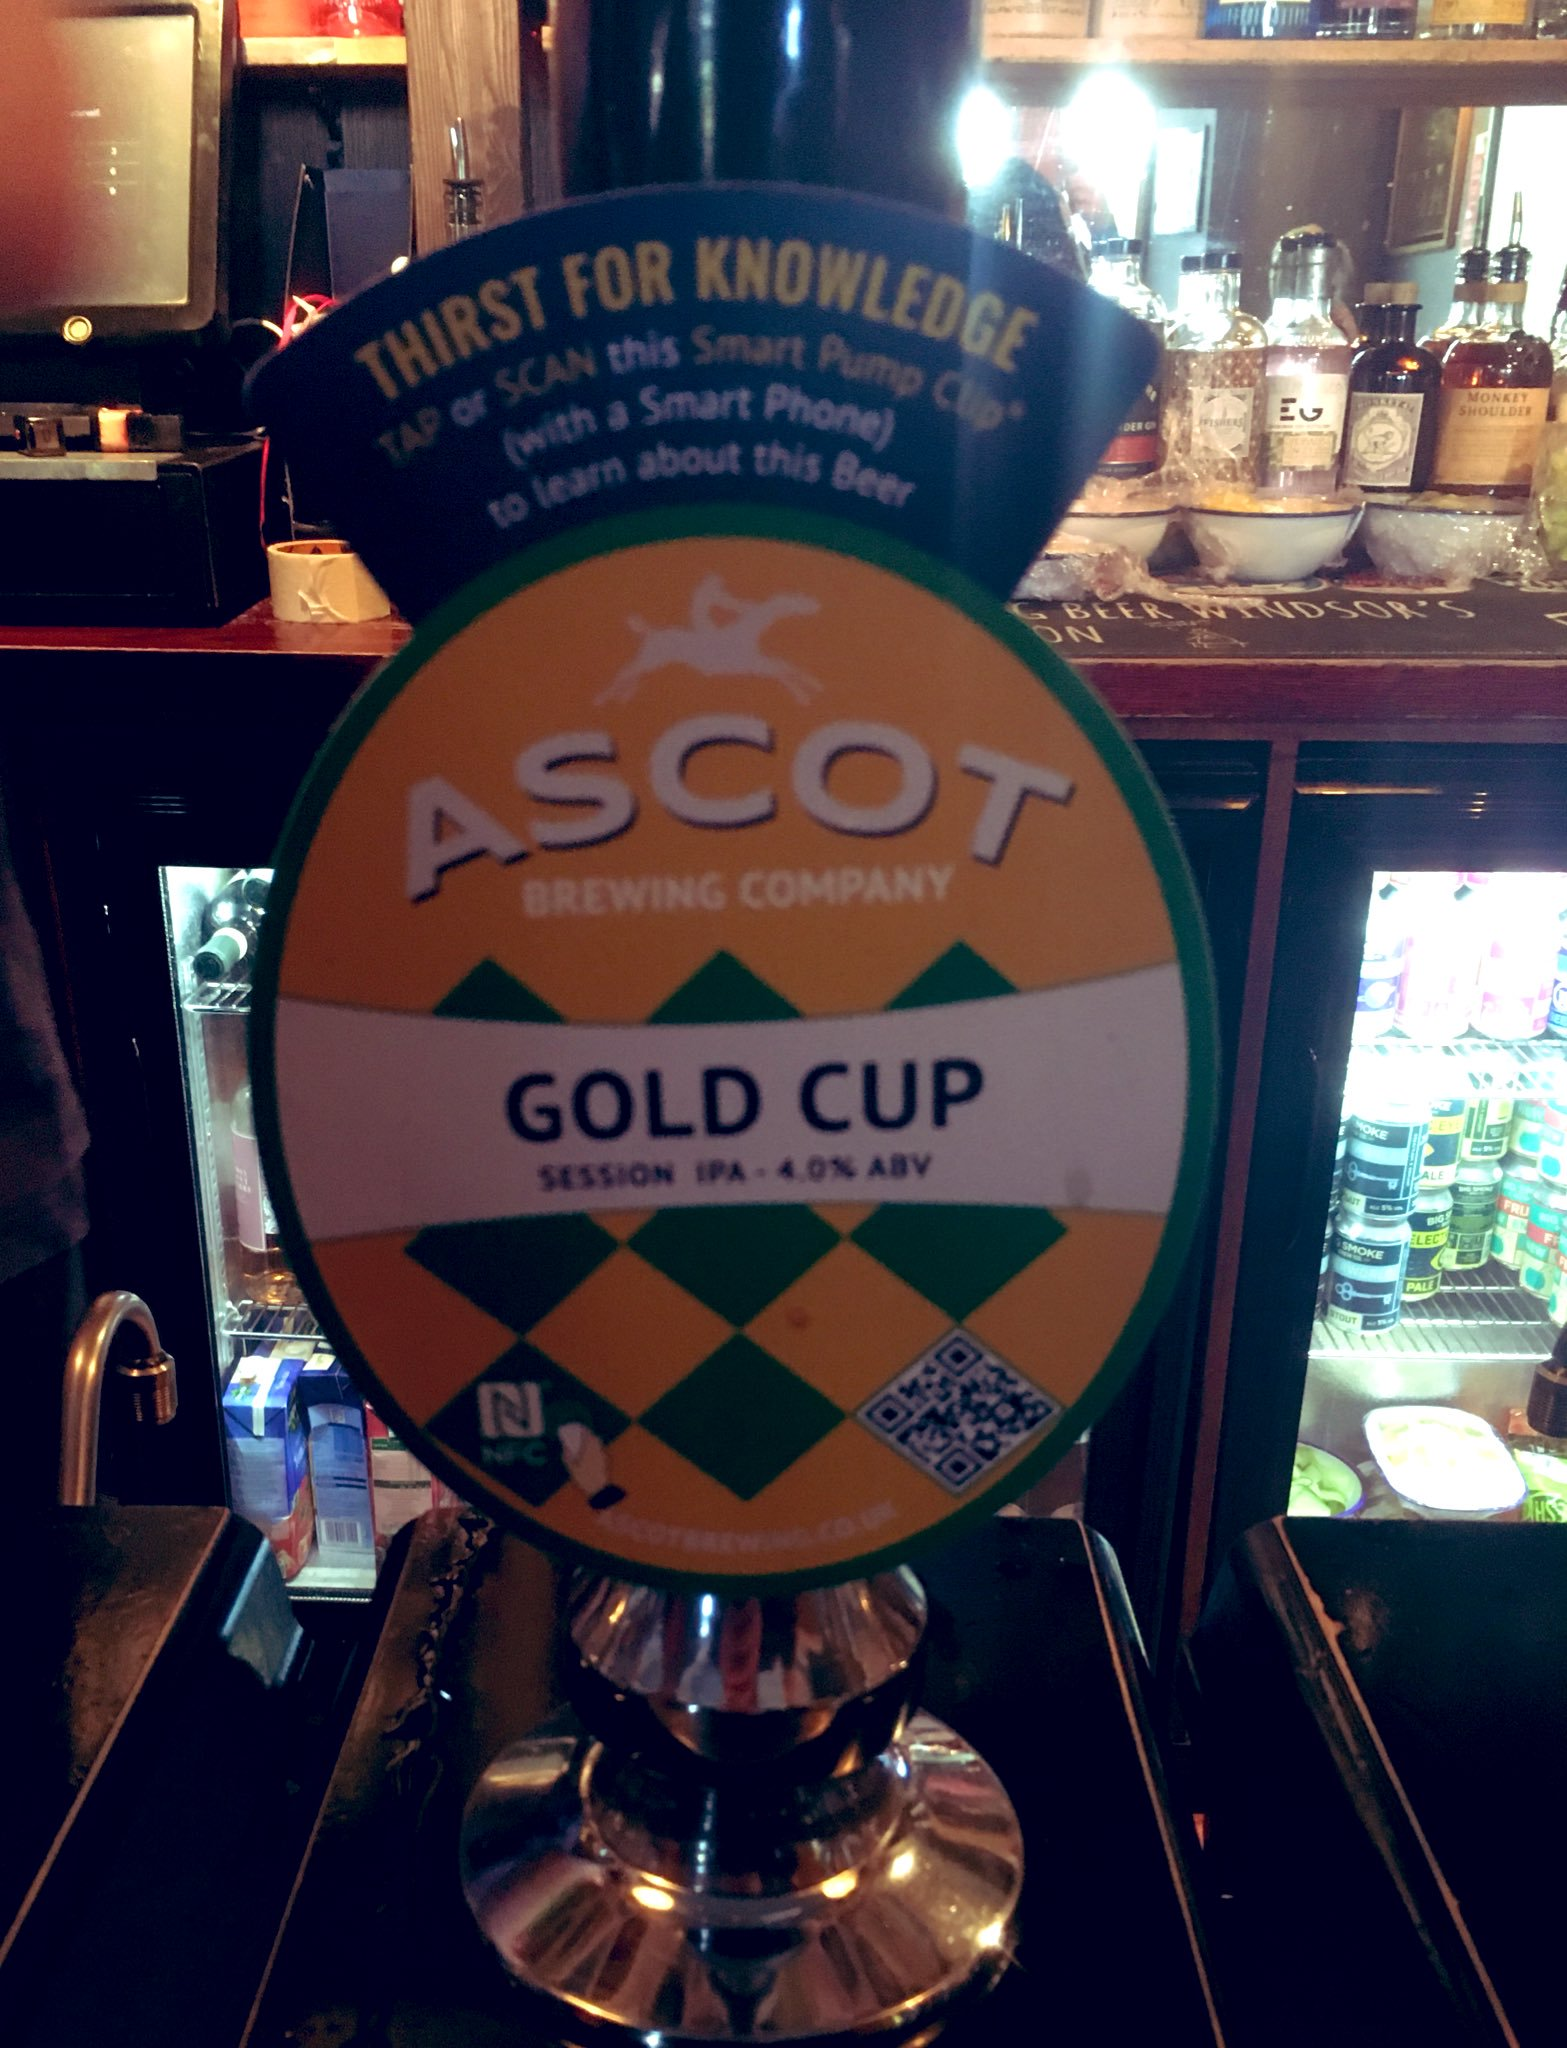 253: Gold Cup